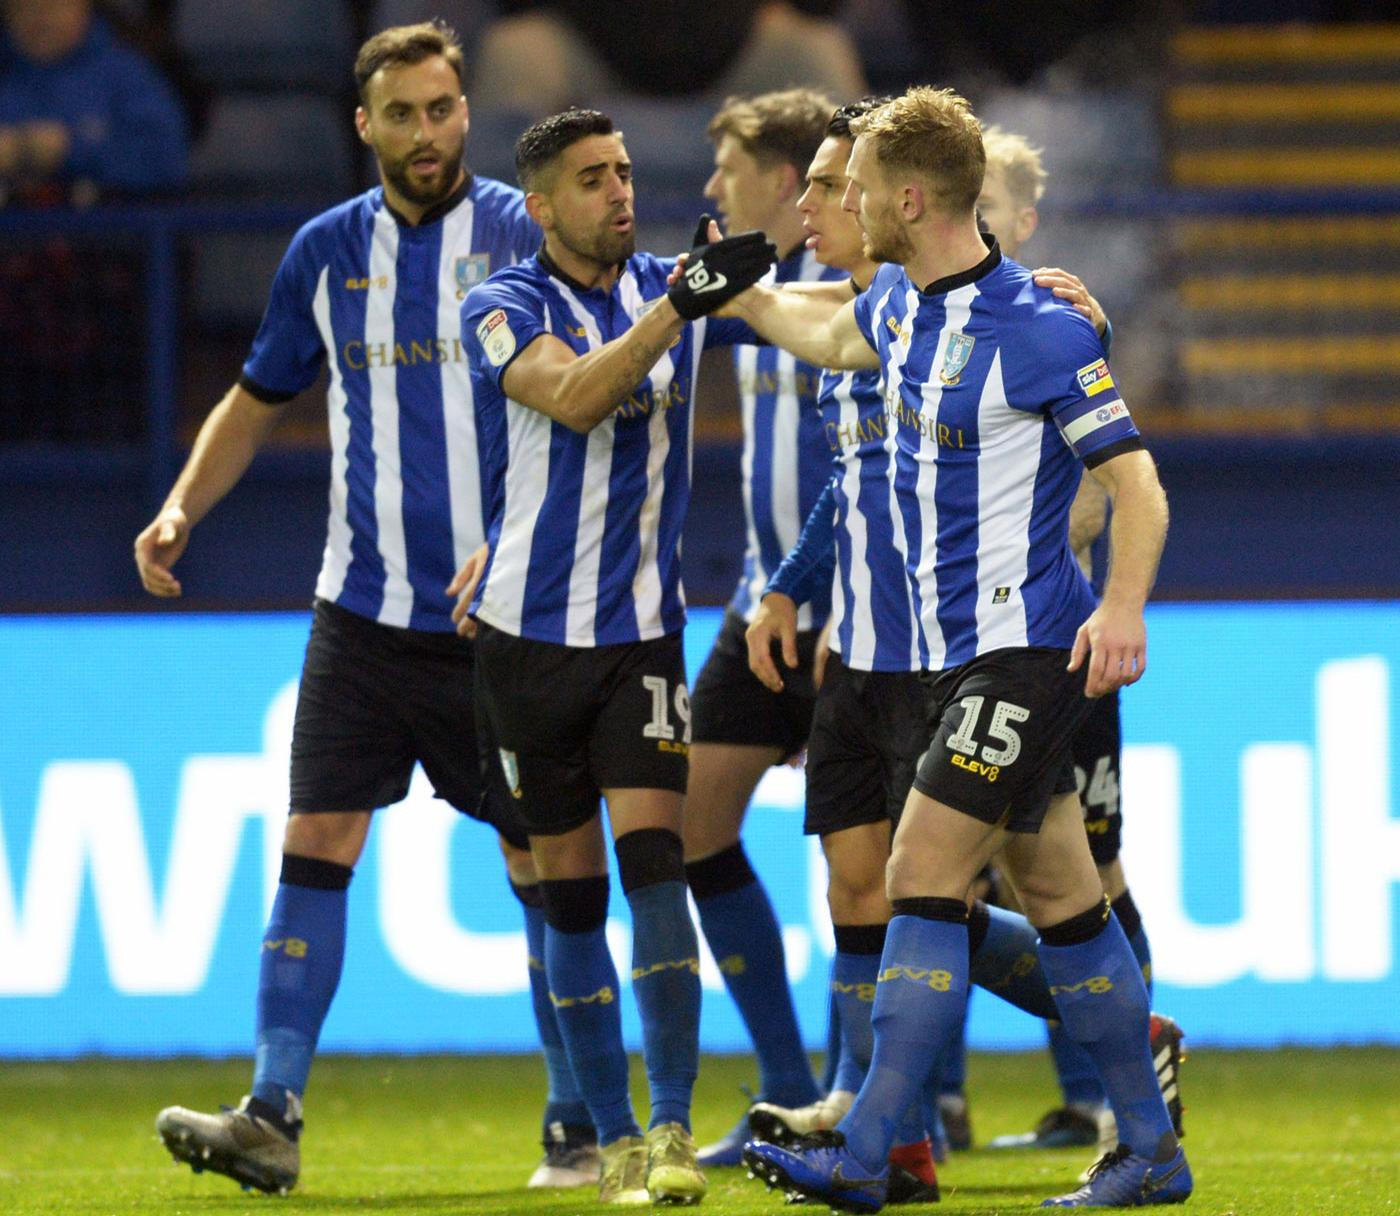 Sheffield Wednesday came within one win of being promoted to the Engish Premier League in 2016